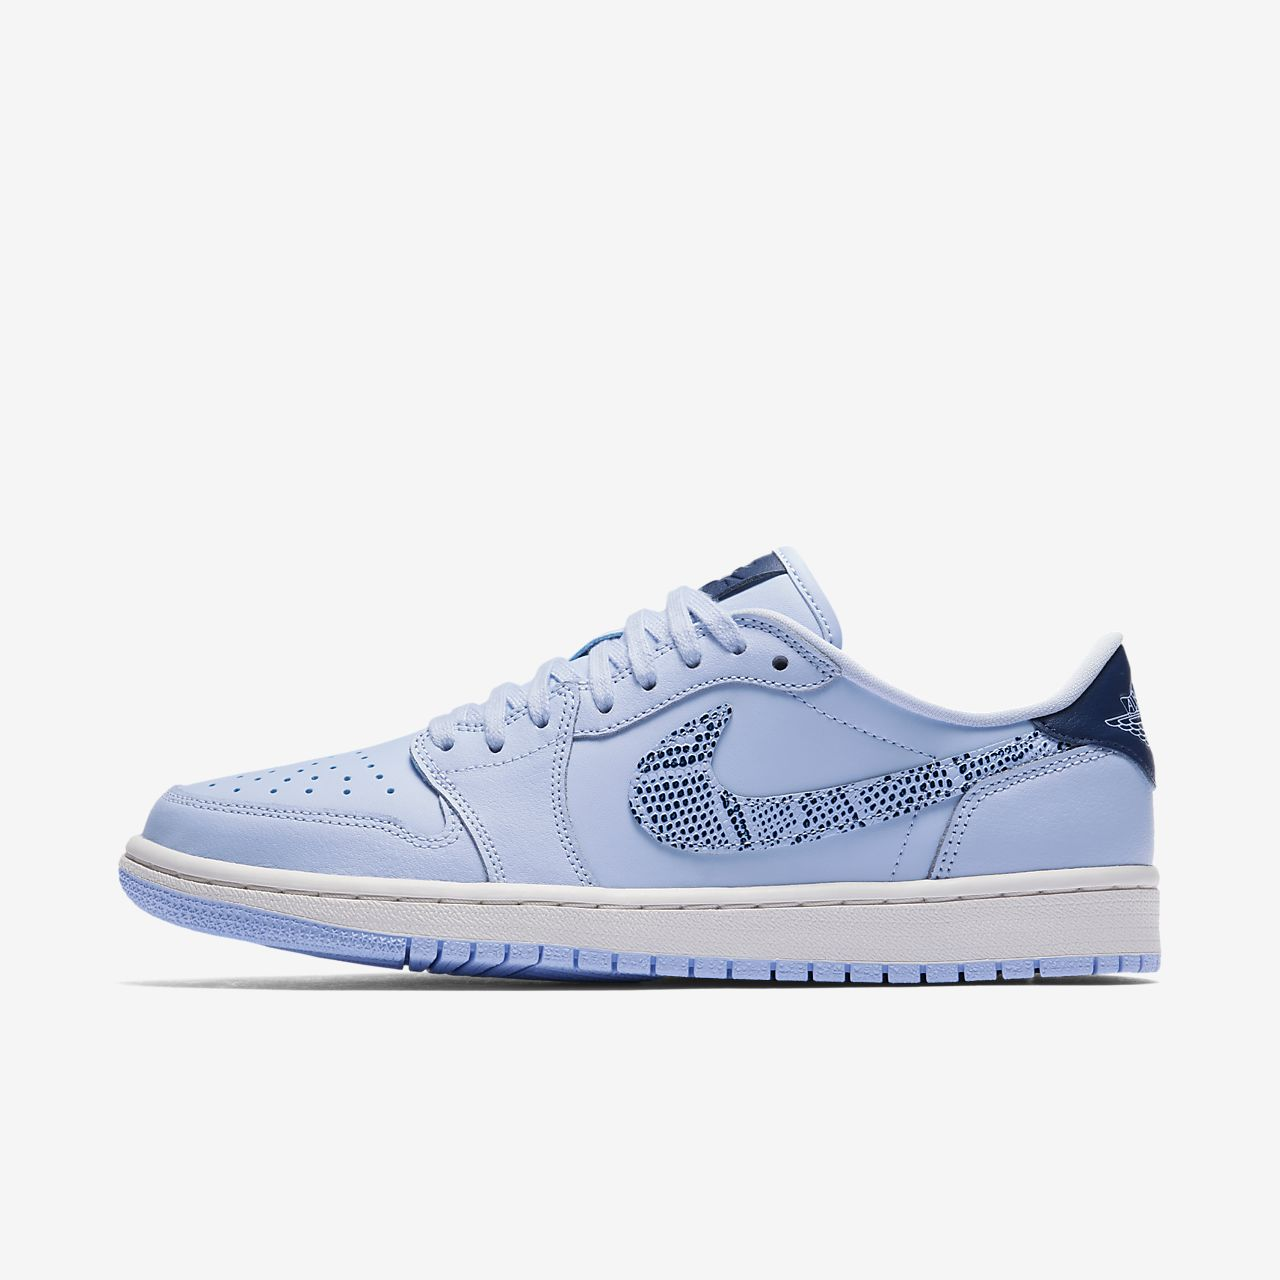 747348e129da Air Jordan 1 Retro Low OG Women s Shoe. Nike.com NZ